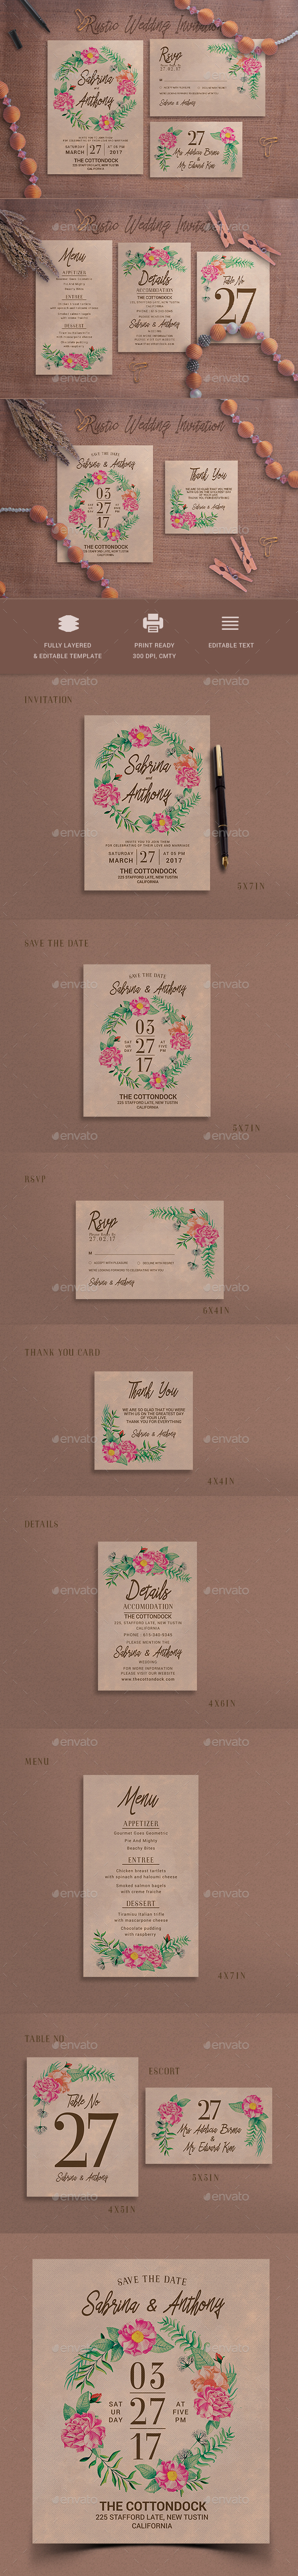 Rustic Wedding Invitation - Weddings Cards & Invites